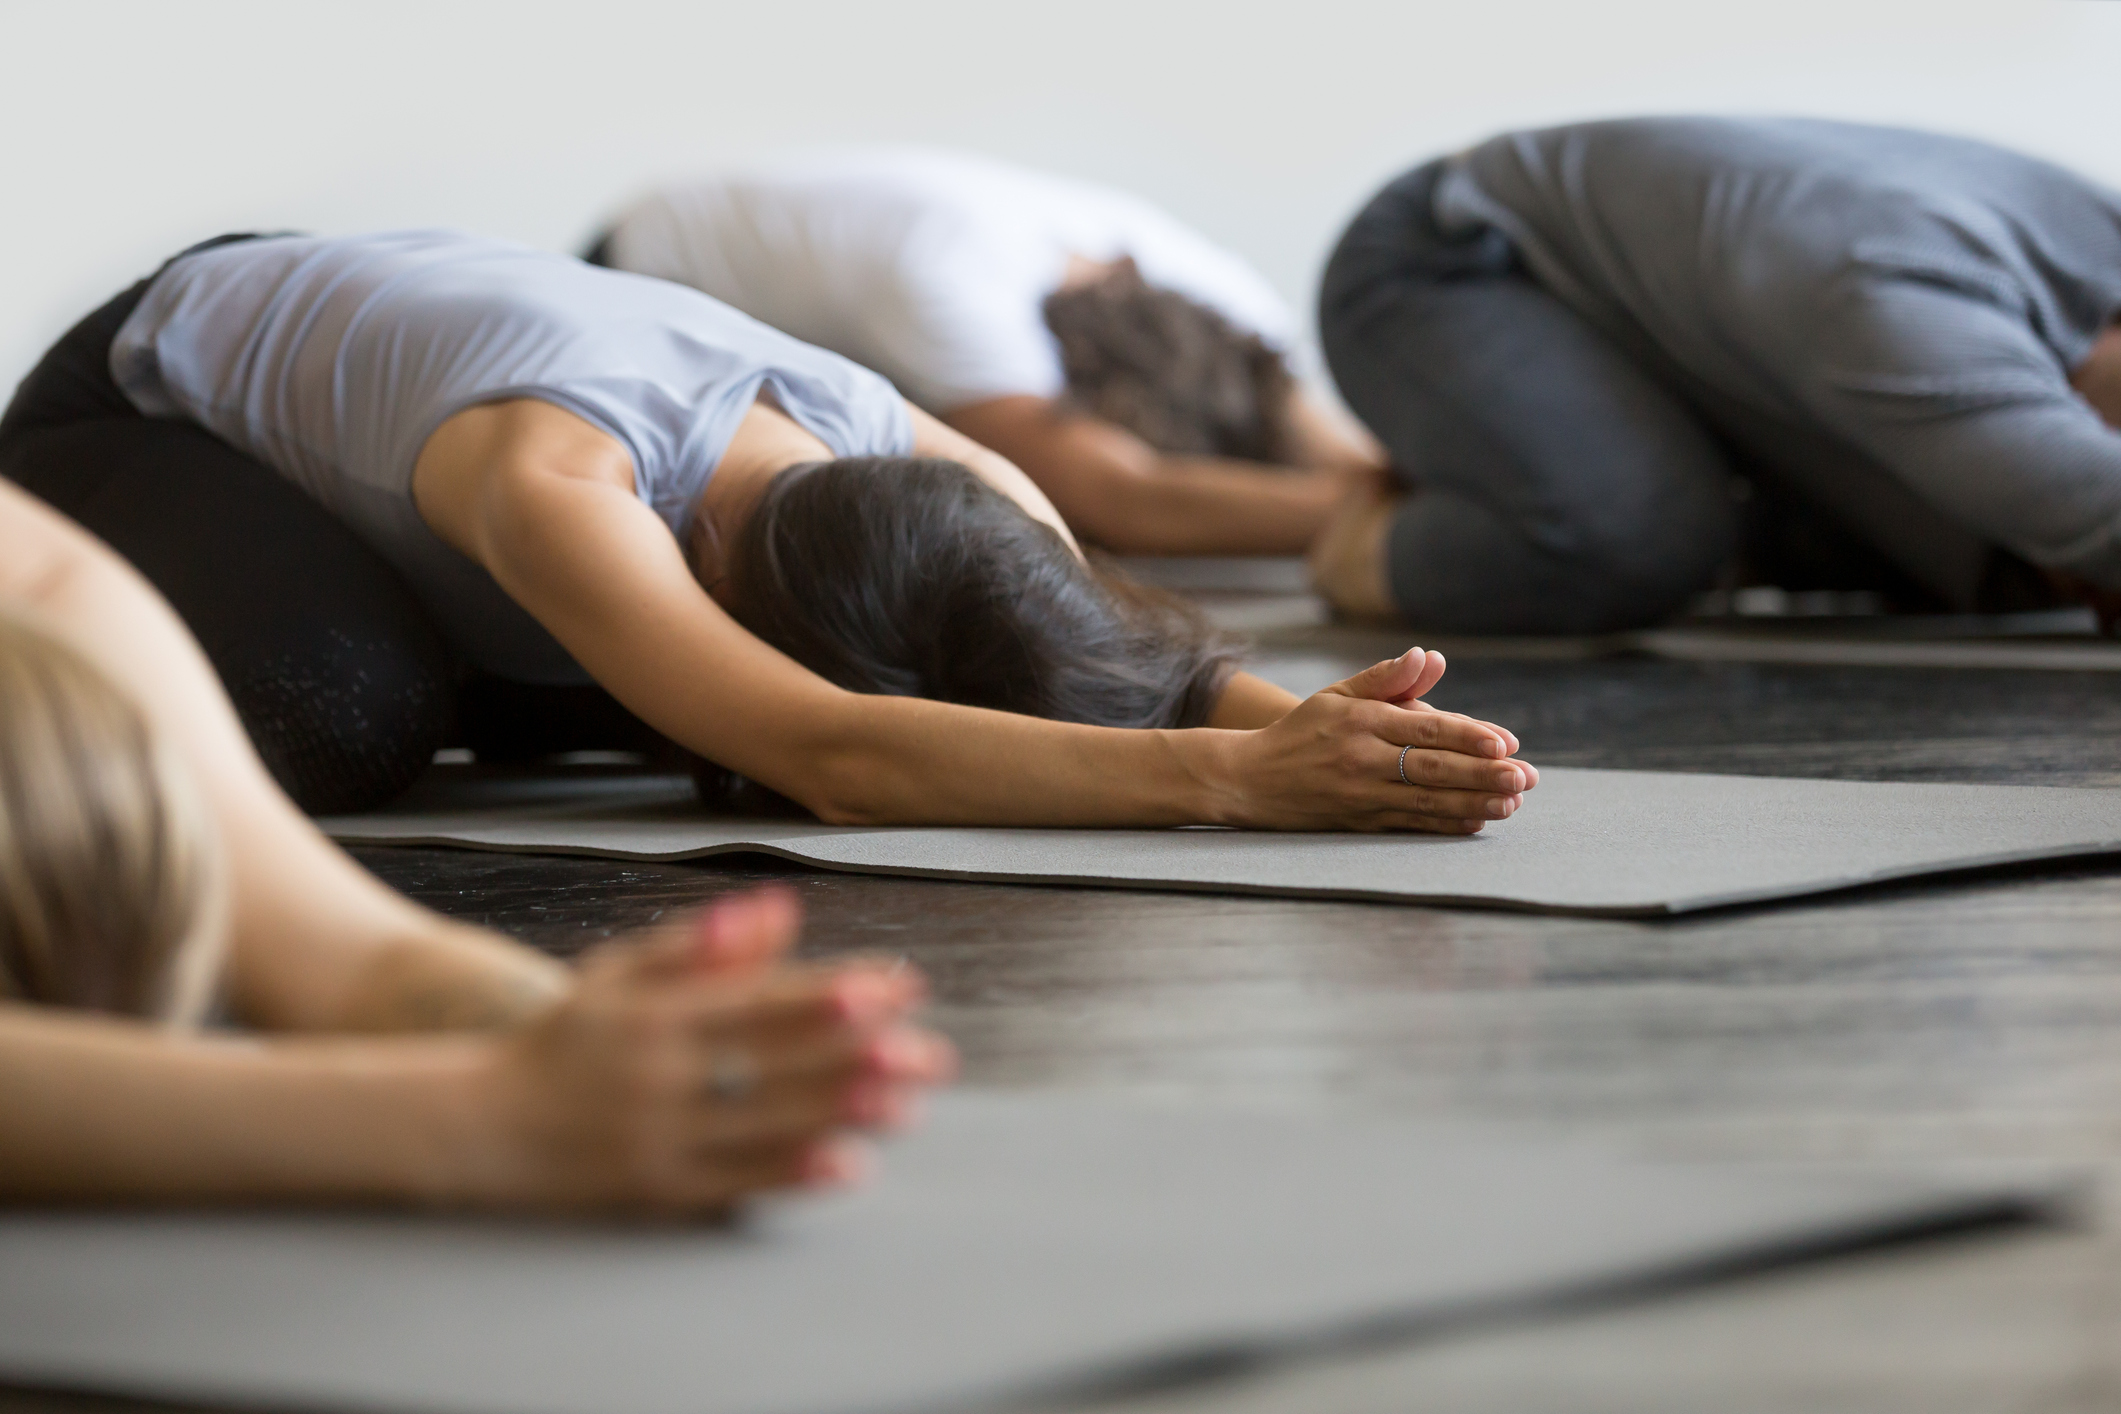 Survivors of Domestic Violence and Sexual Assault - Weekly yoga classes at a women's intake facility designed to help ease the trauma of domestic violence and sexual assault and provide tools for survivors to regain a sense of self-worth, dignity and empowerment.